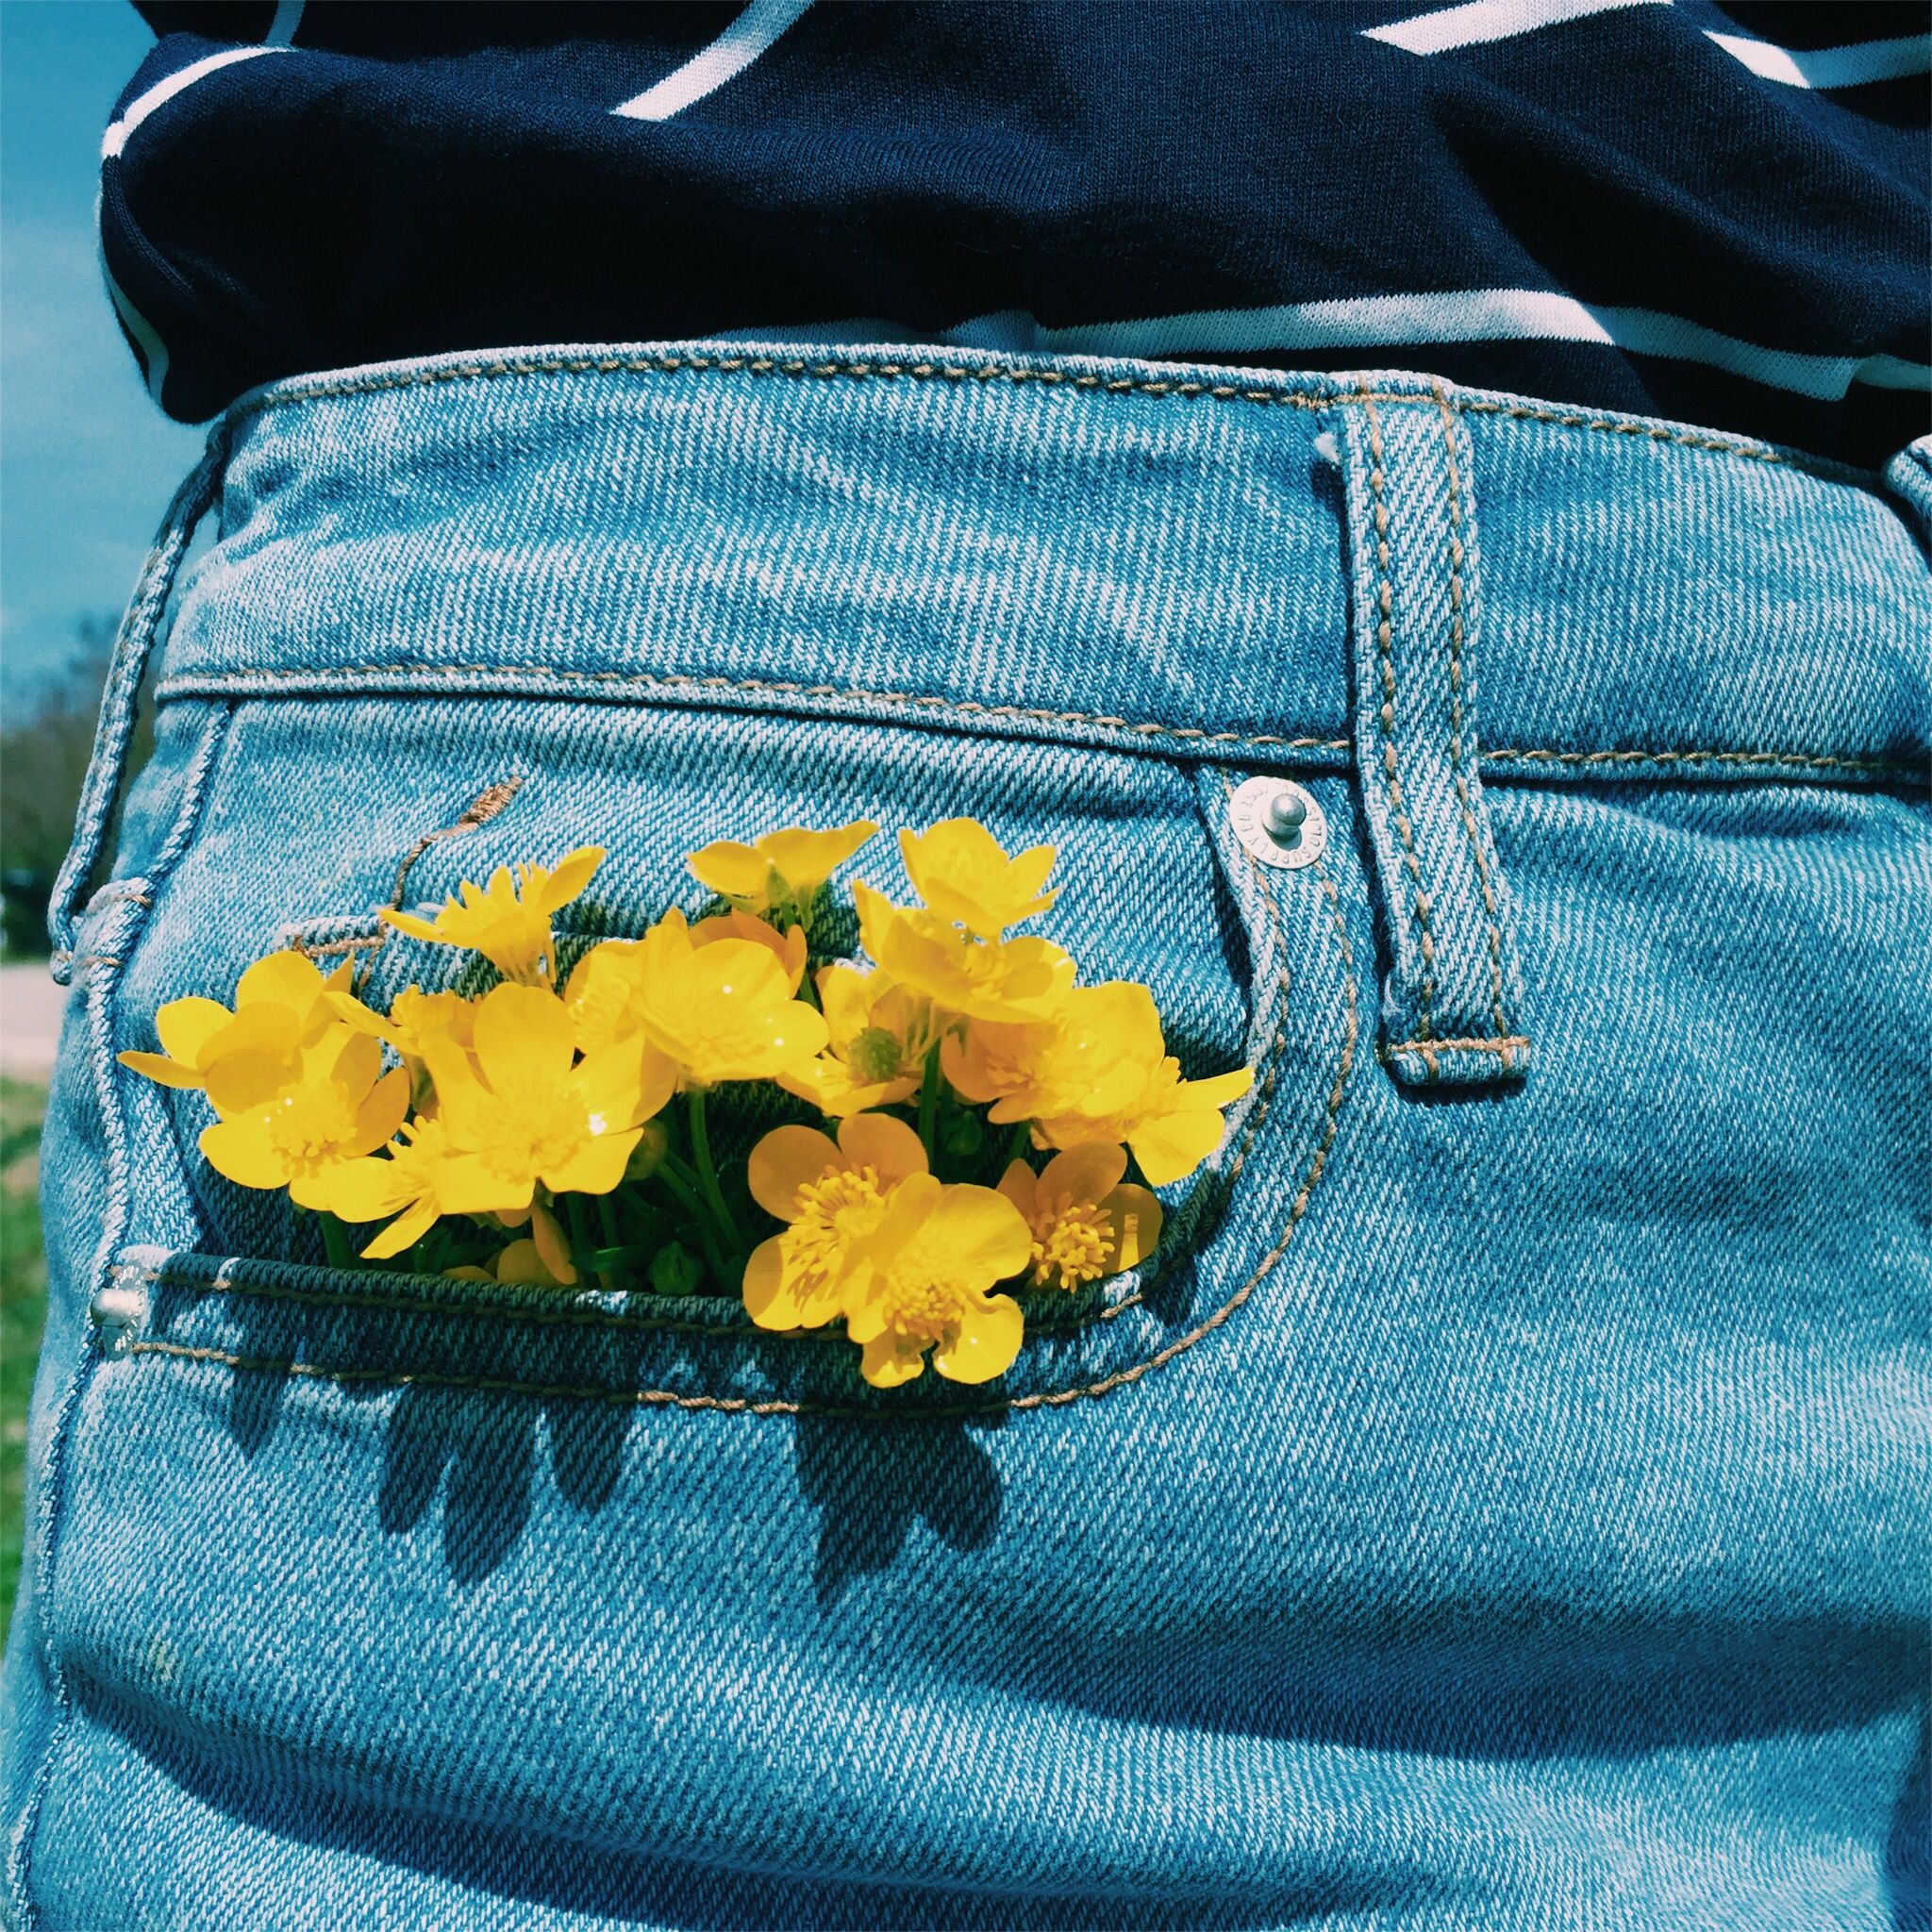 aesthetic pictures blue and yellow